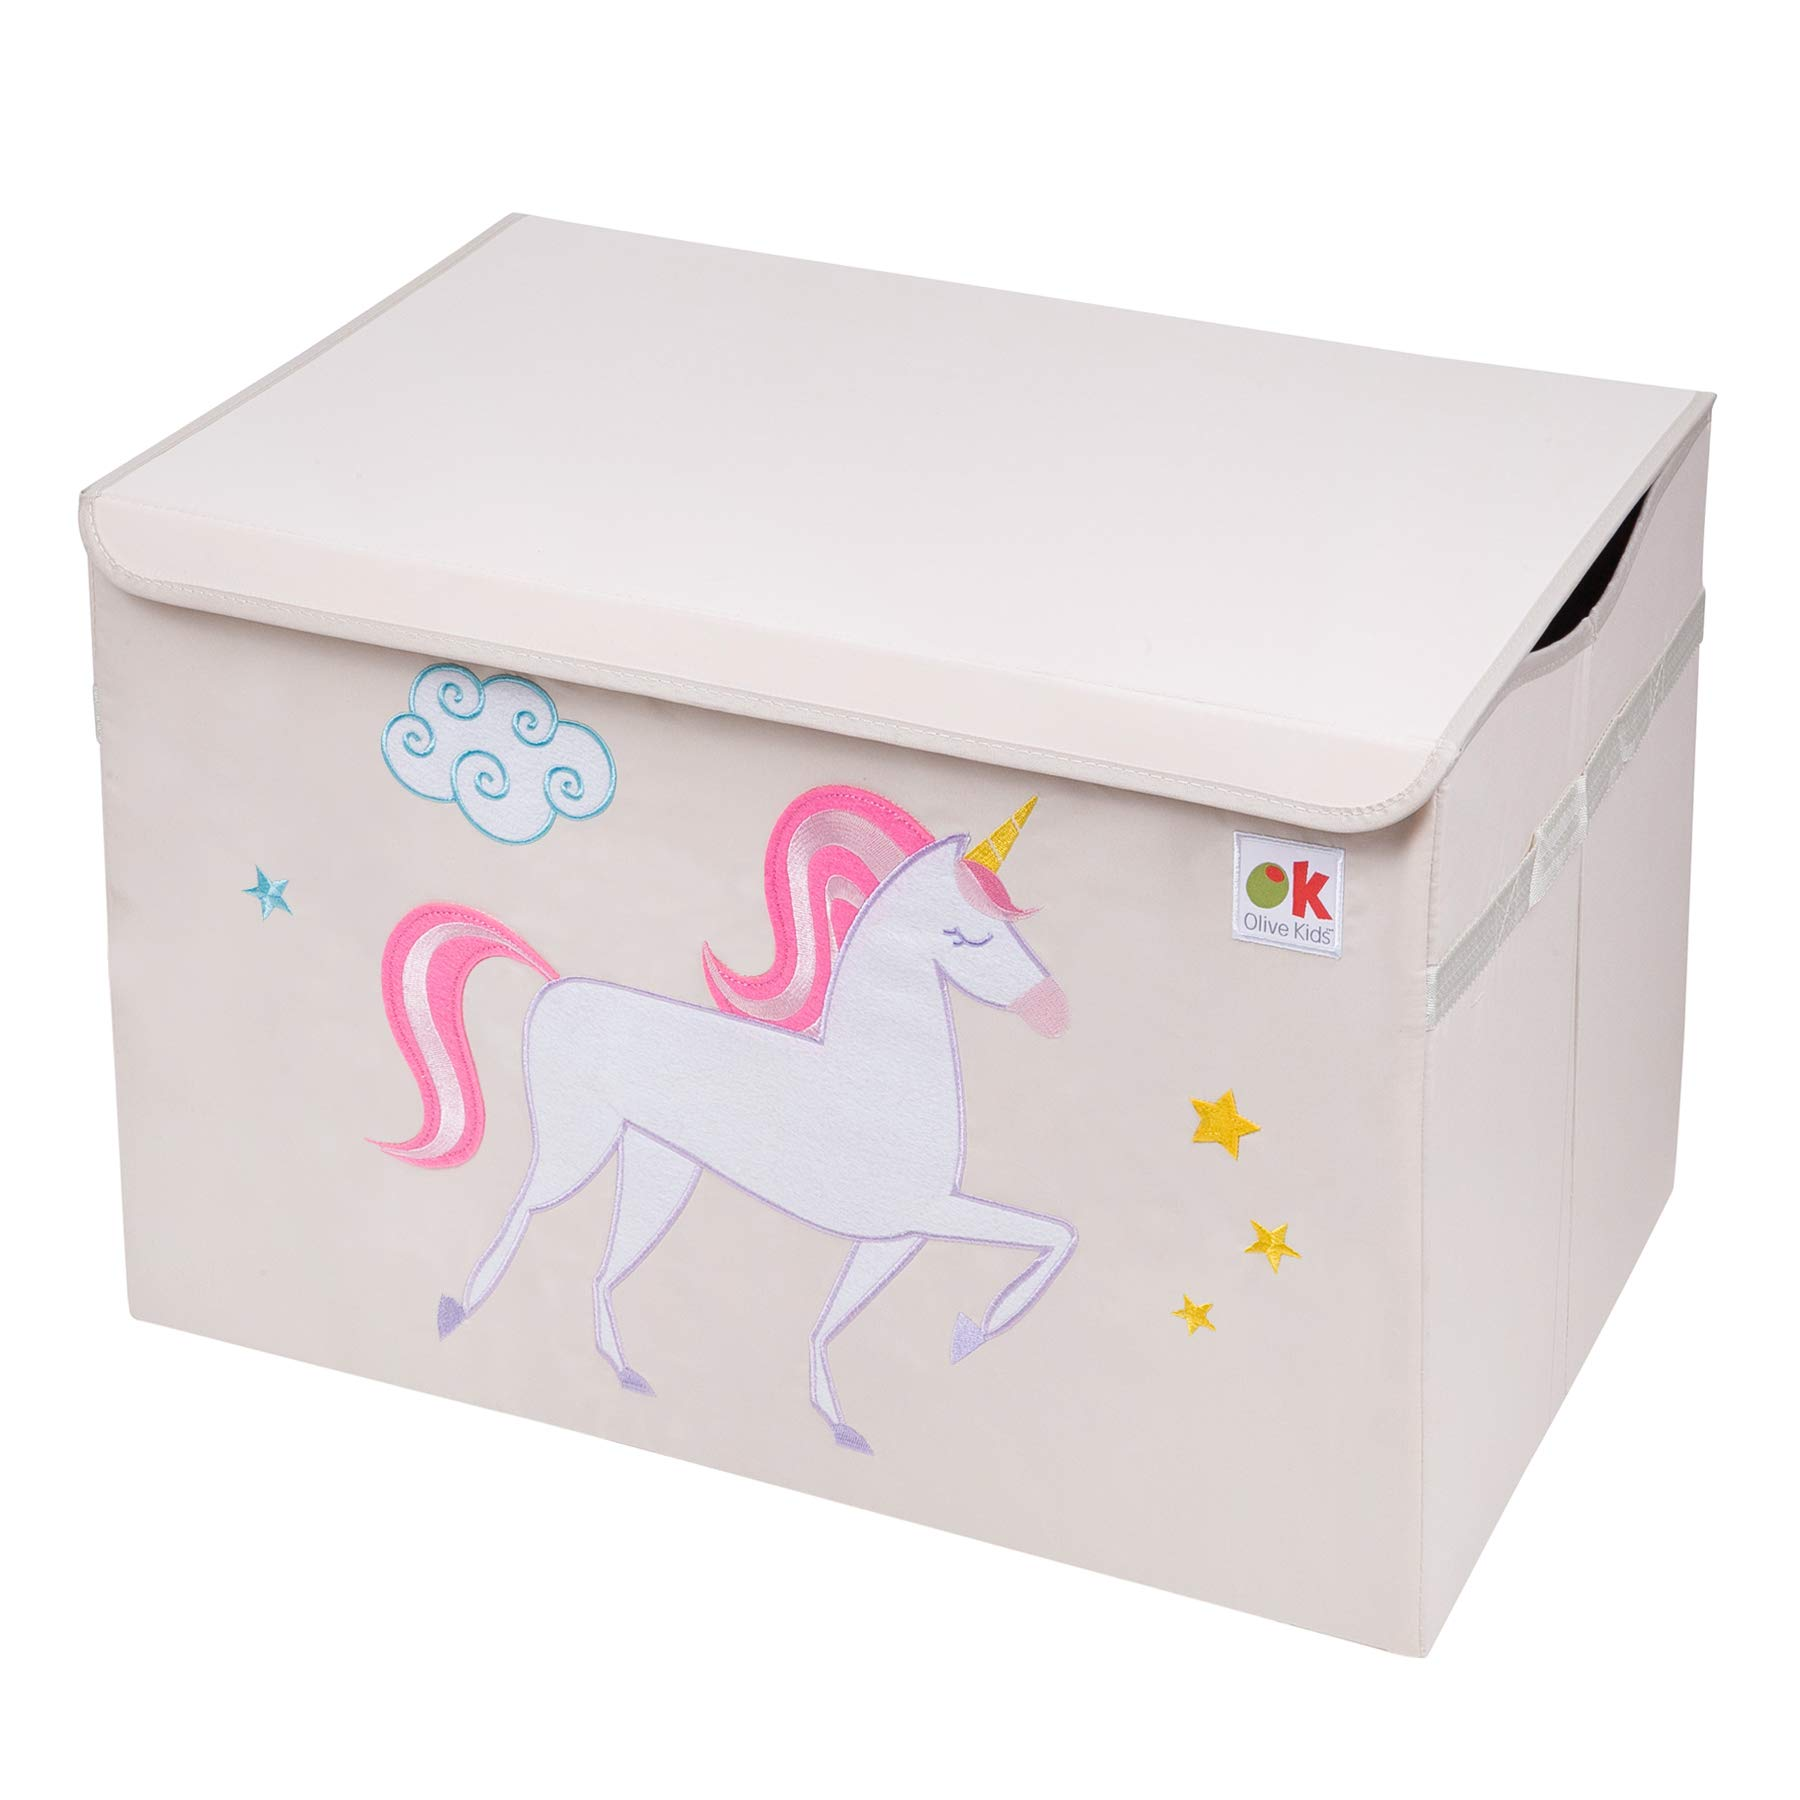 Olive Kids by Wildkin Toy Chest, Perfect for Playroom Organization, Measures 24 x 15 x 14 Inches, Coordinates with Other Room Décor – Unicorn